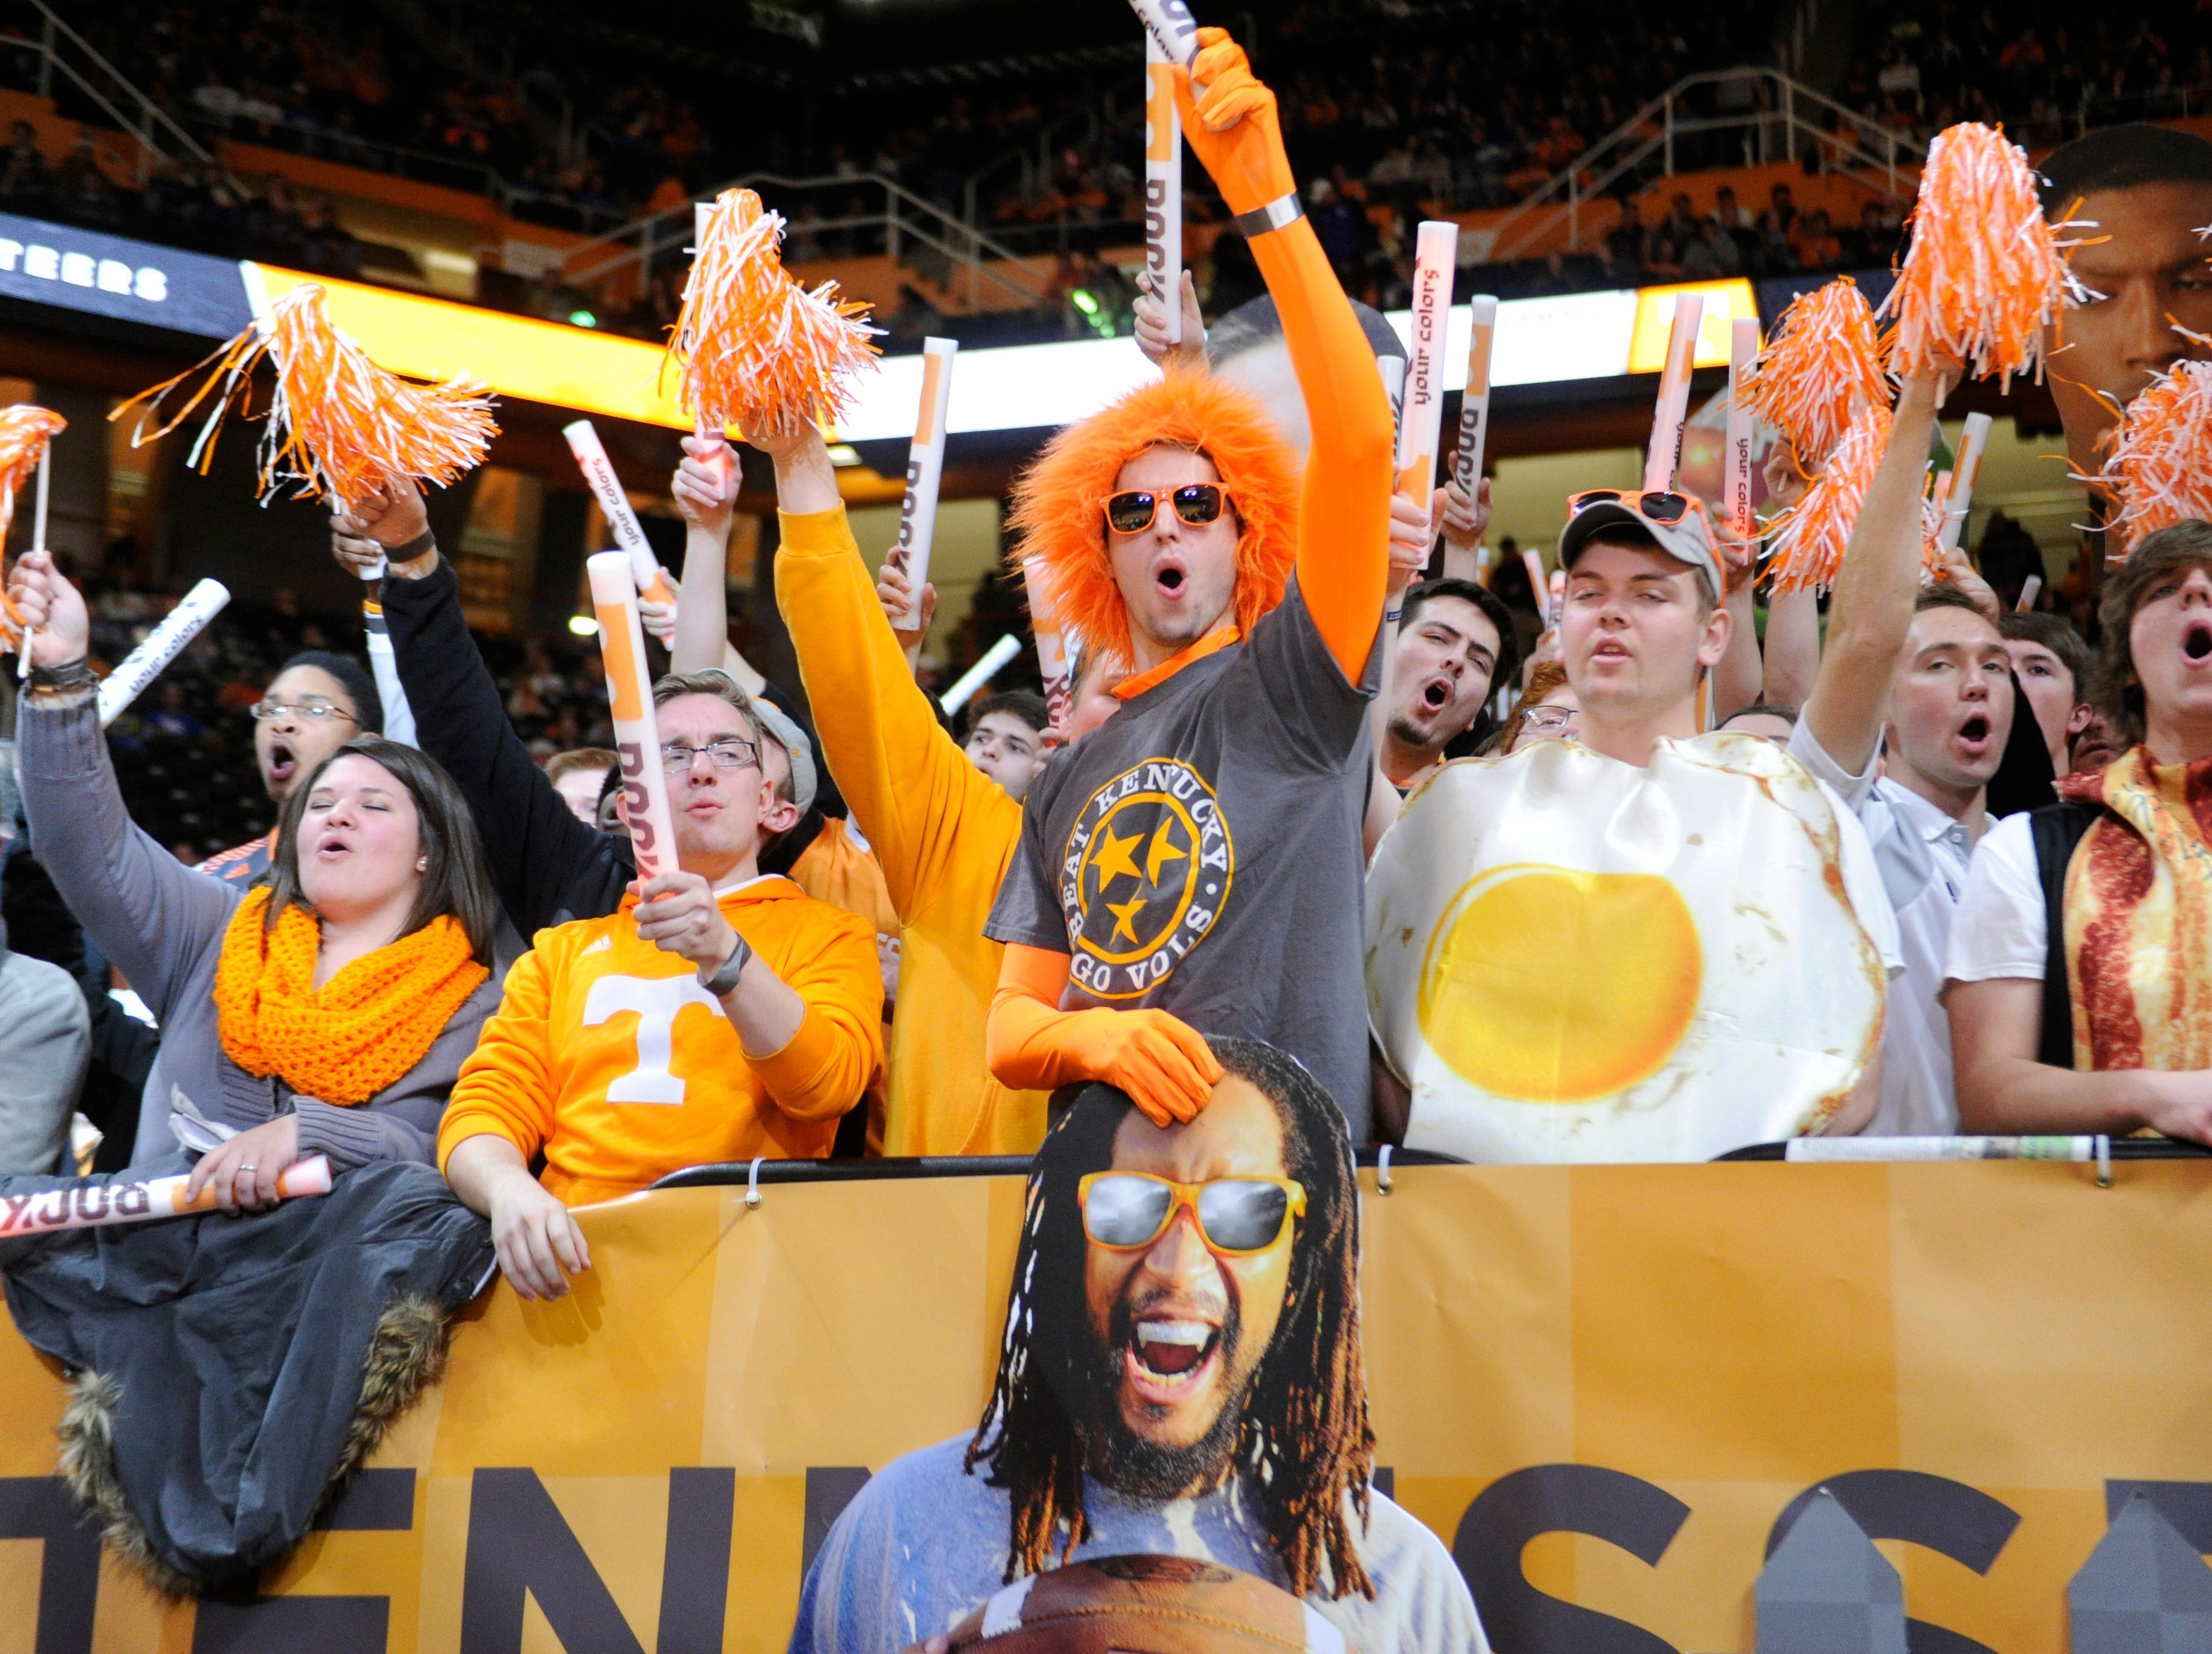 Tennessee fans cheer before a basketball game against Kentucky at Thompson-Boling Arena in Knoxville on Tuesday, Feb. 17, 2015.